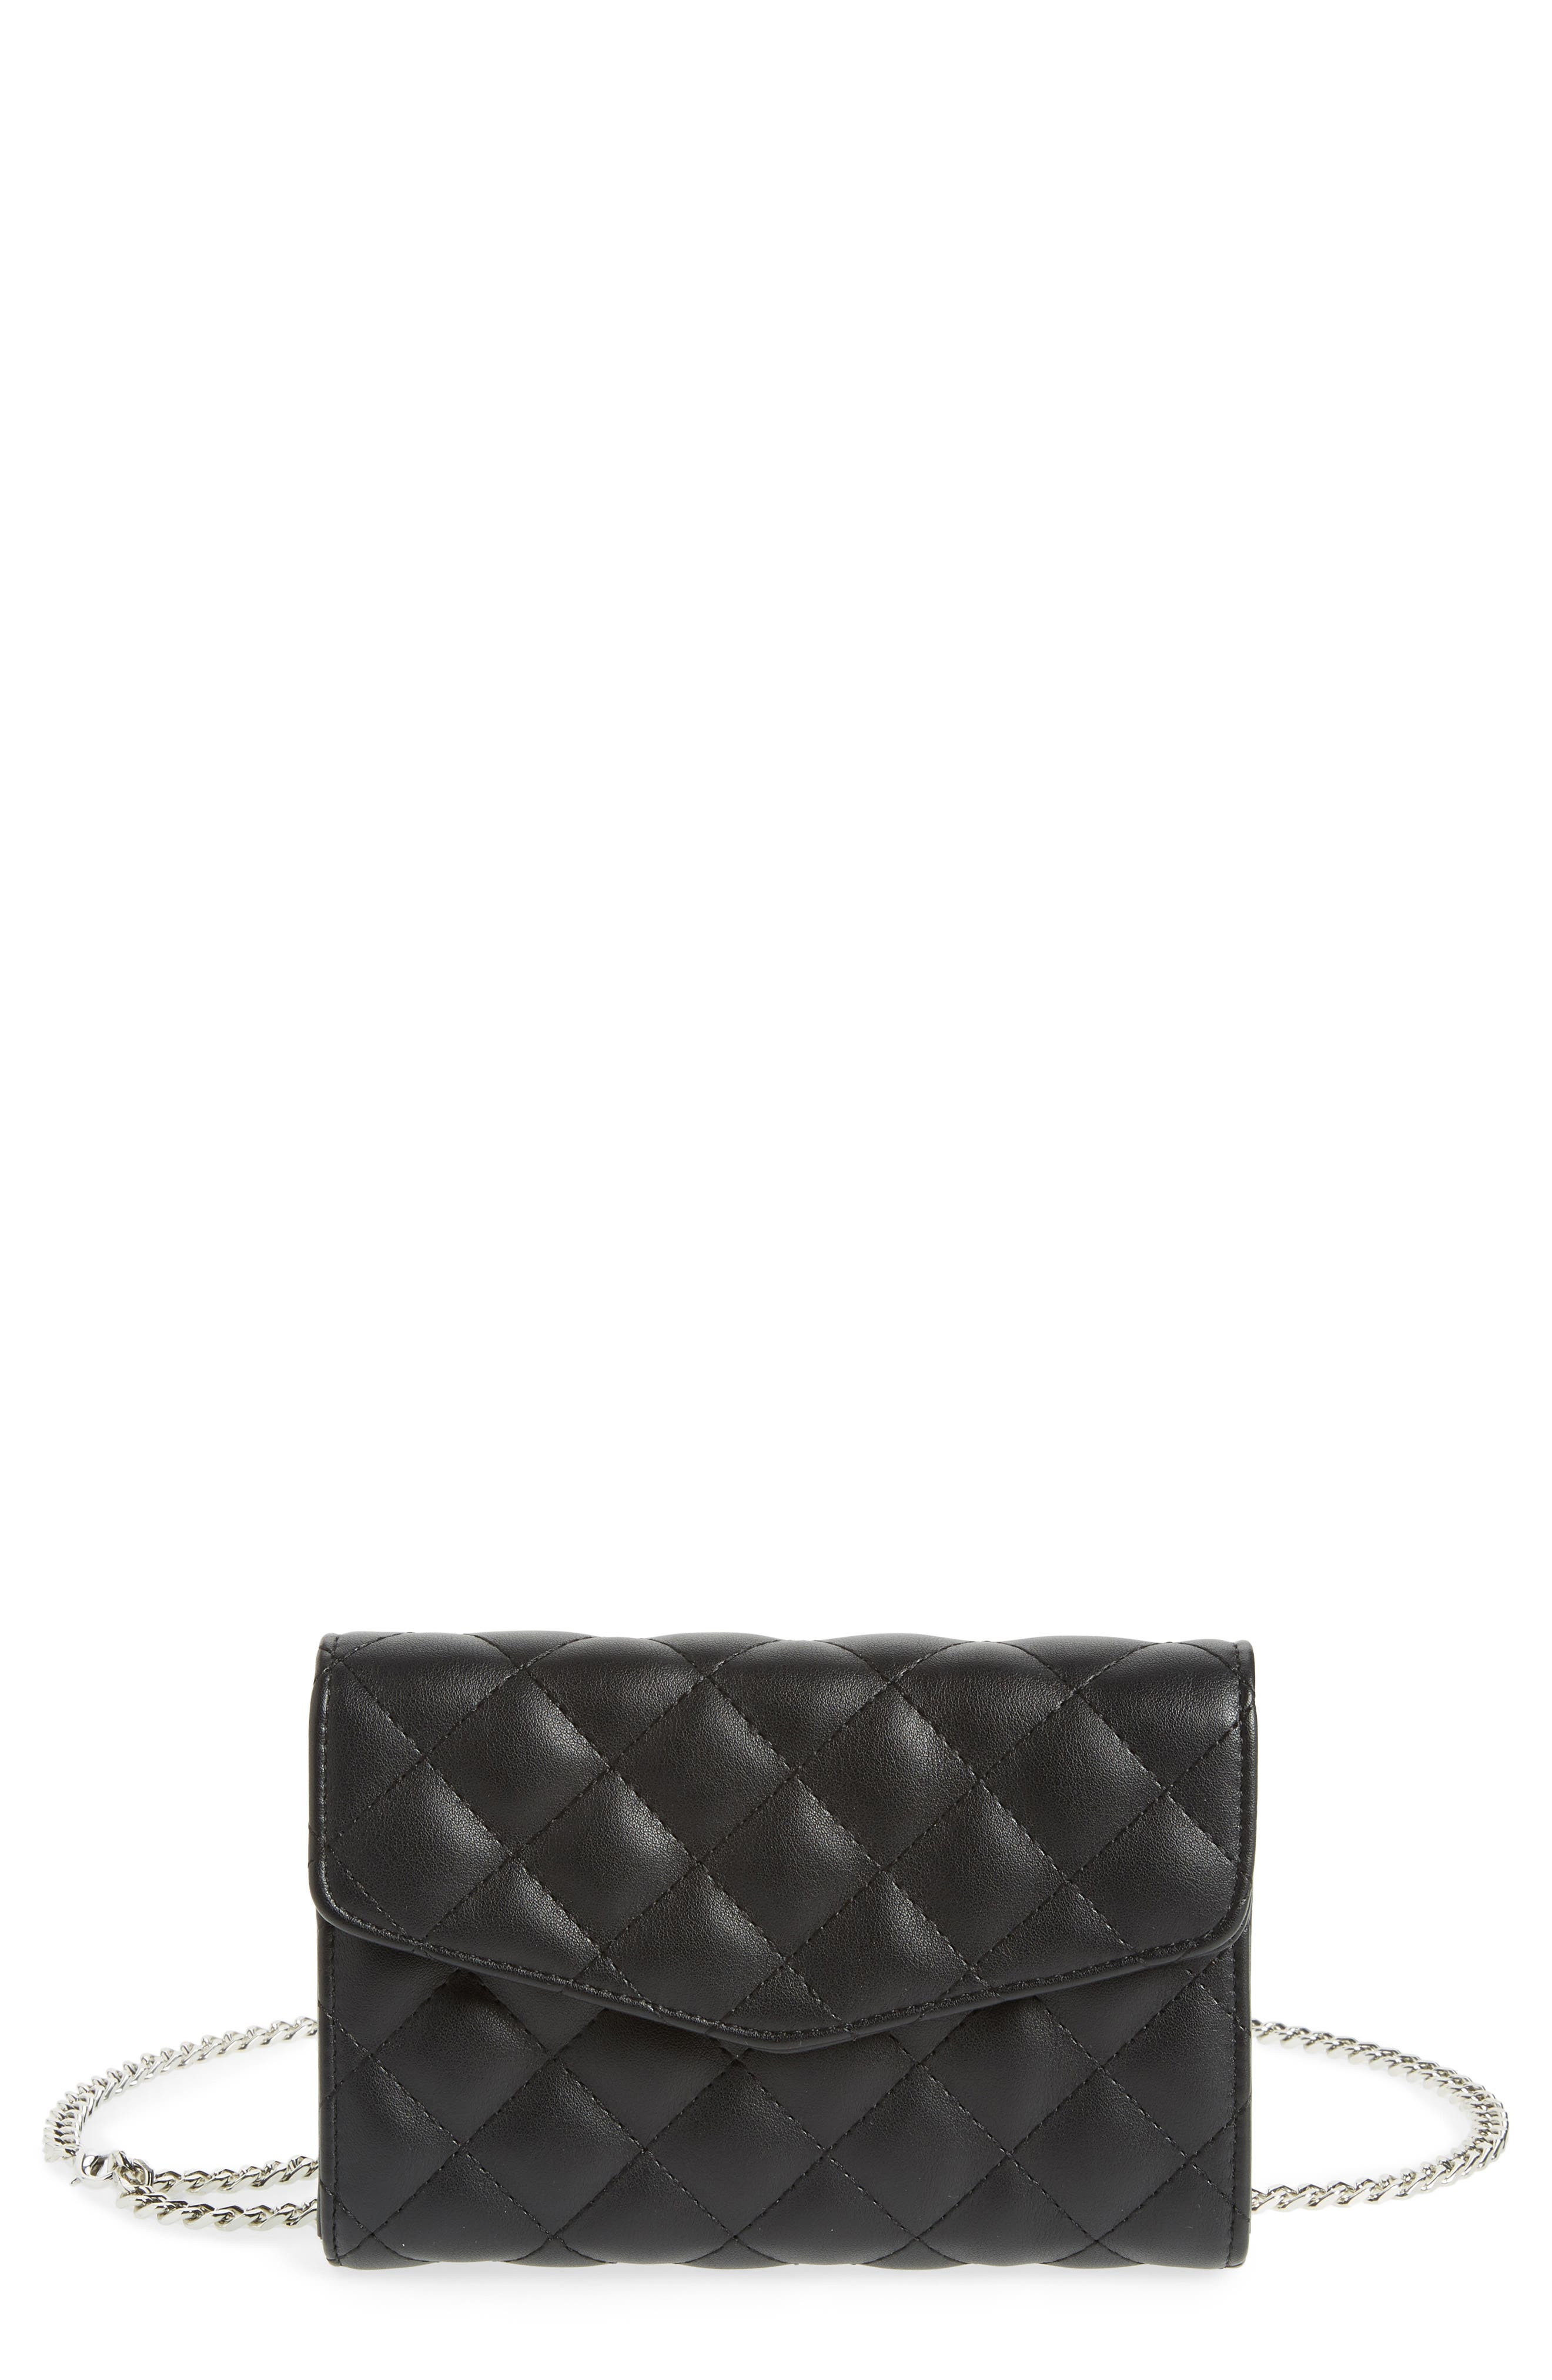 Quilted Bag with Crossbody Strap,                             Main thumbnail 1, color,                             Black